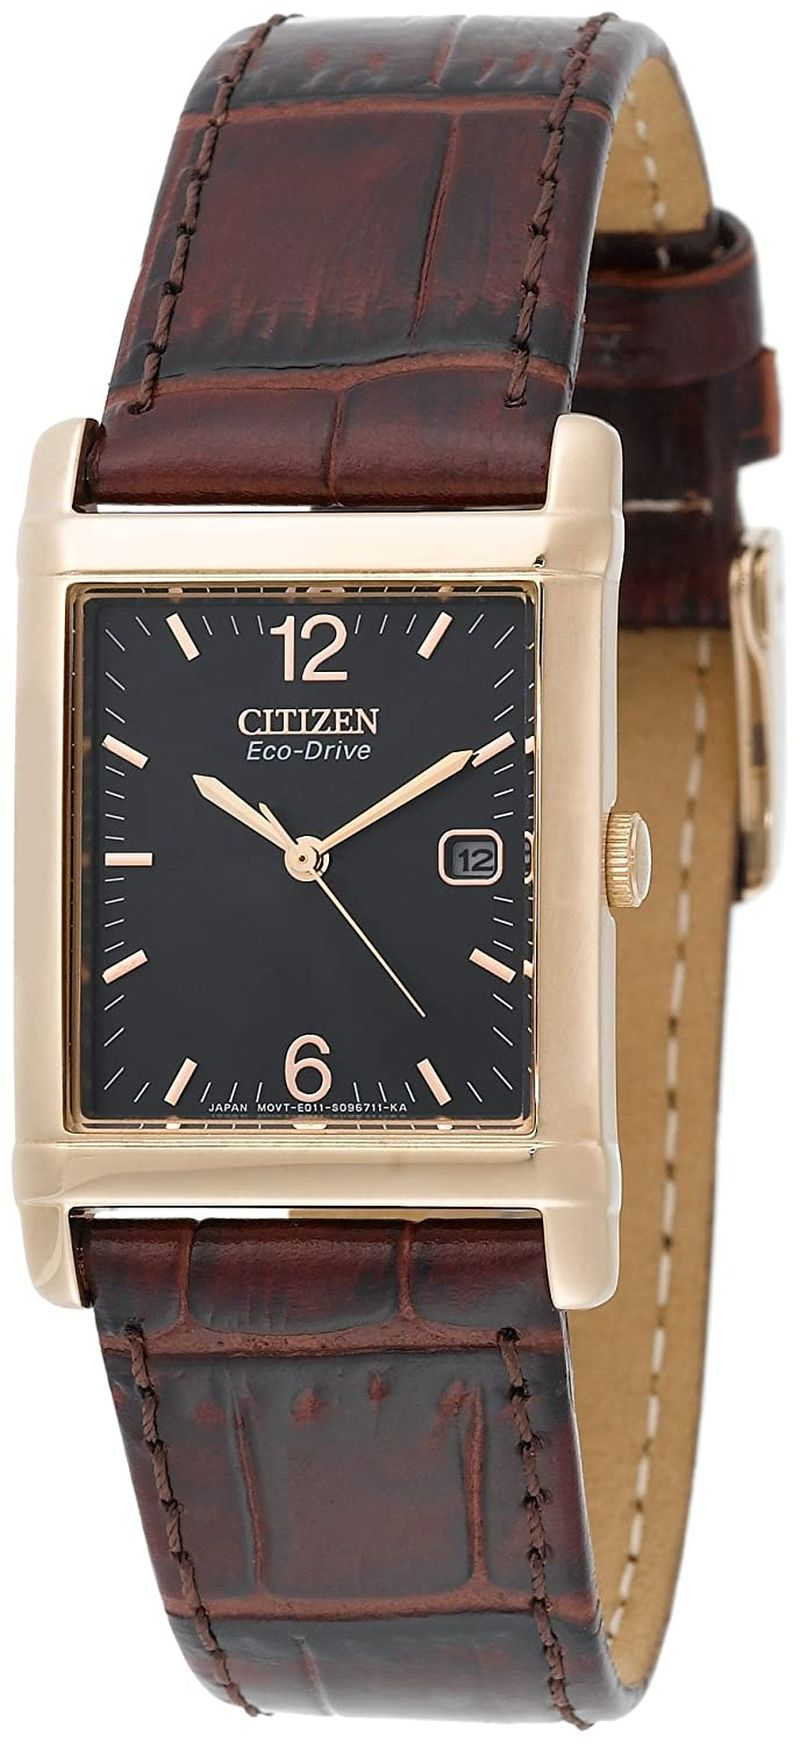 Citizen Men's BW0203-01 E Eco Drive